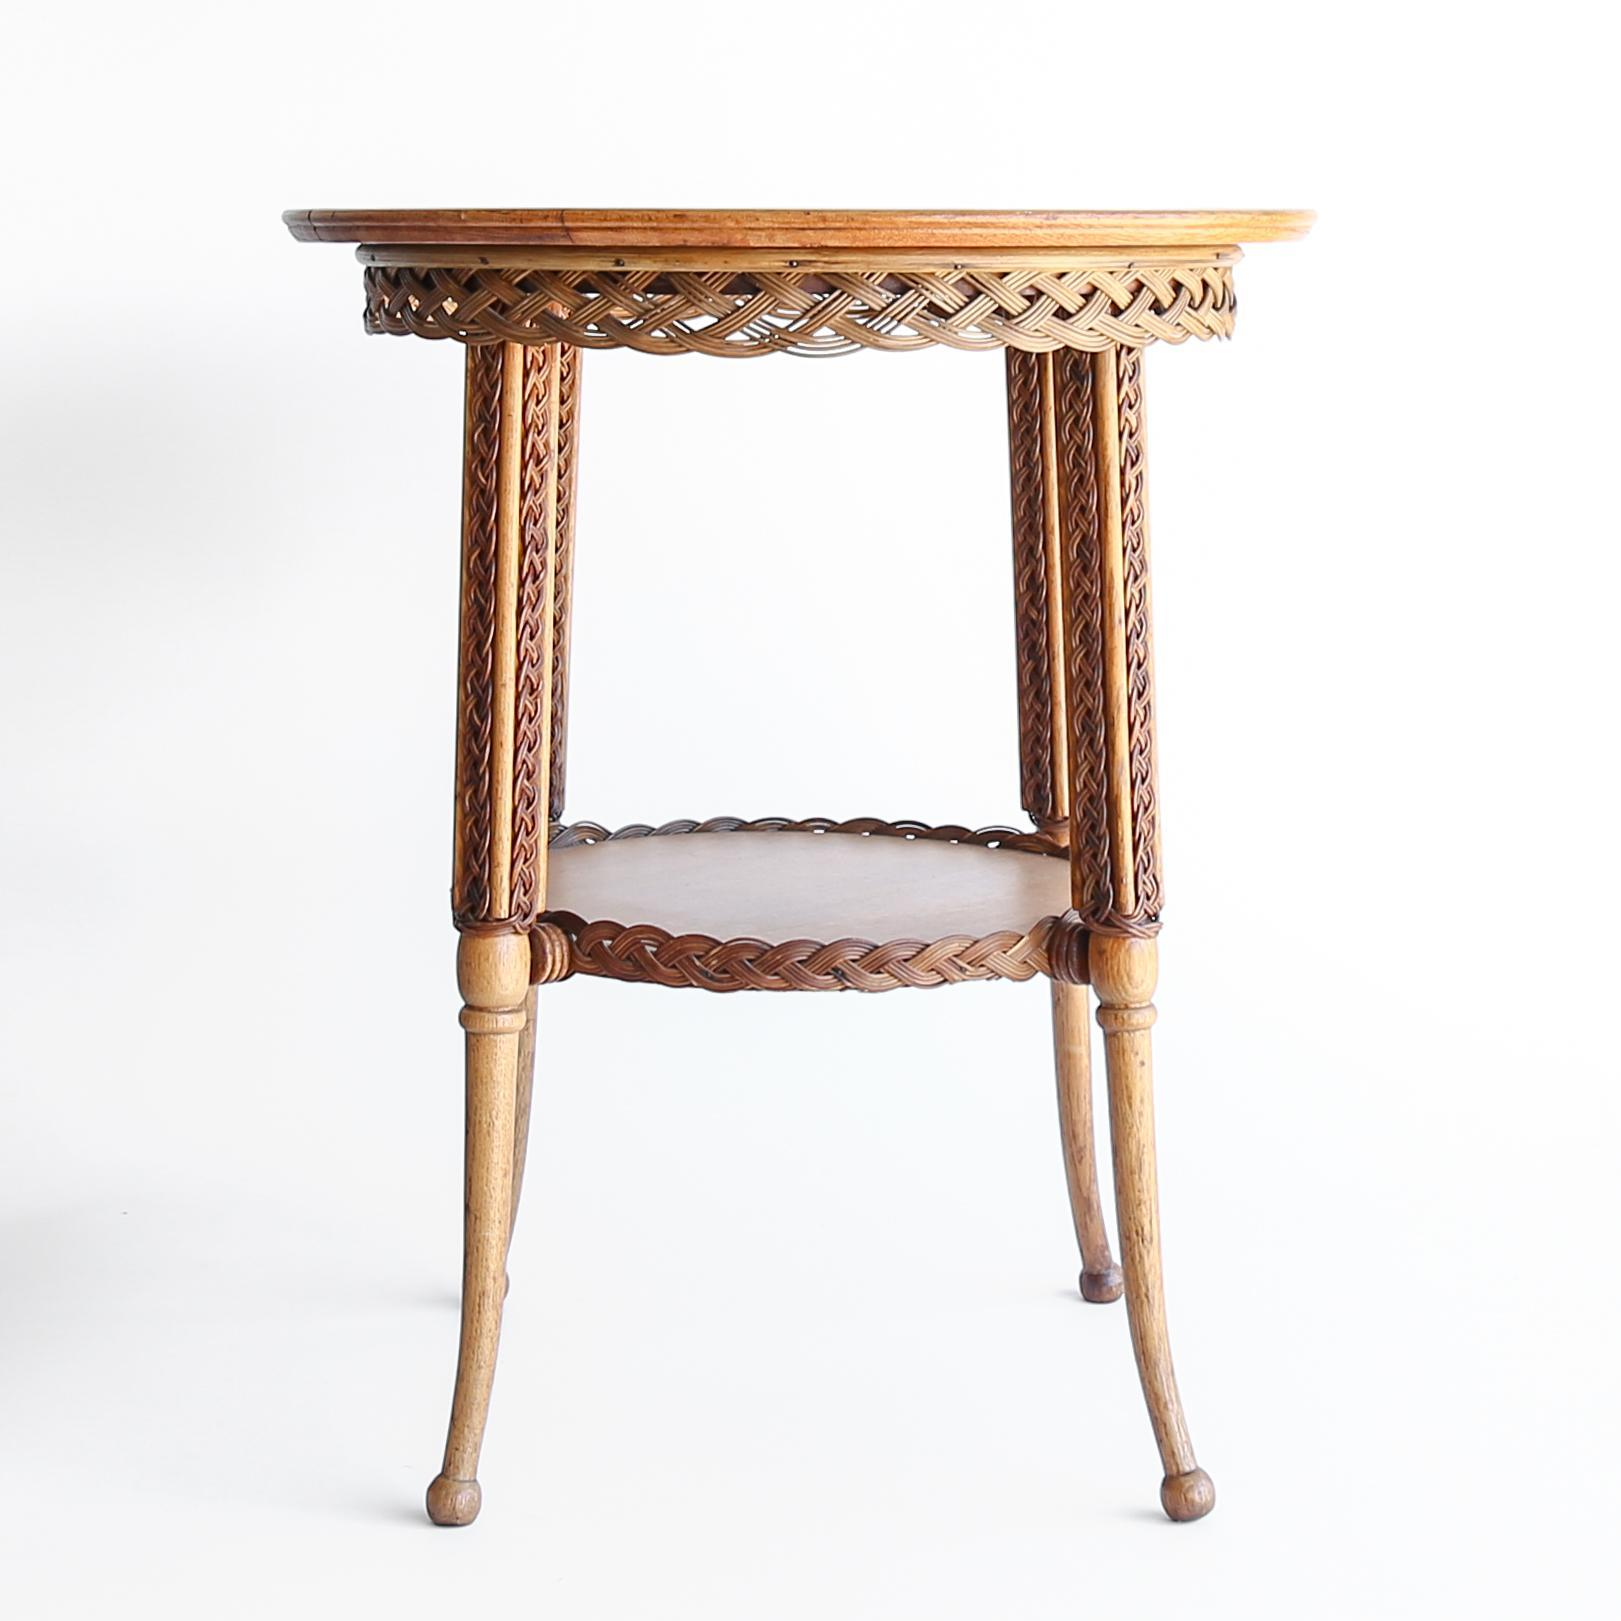 Circa 1890 Antique Oak Amp Wicker Parlor Table From The